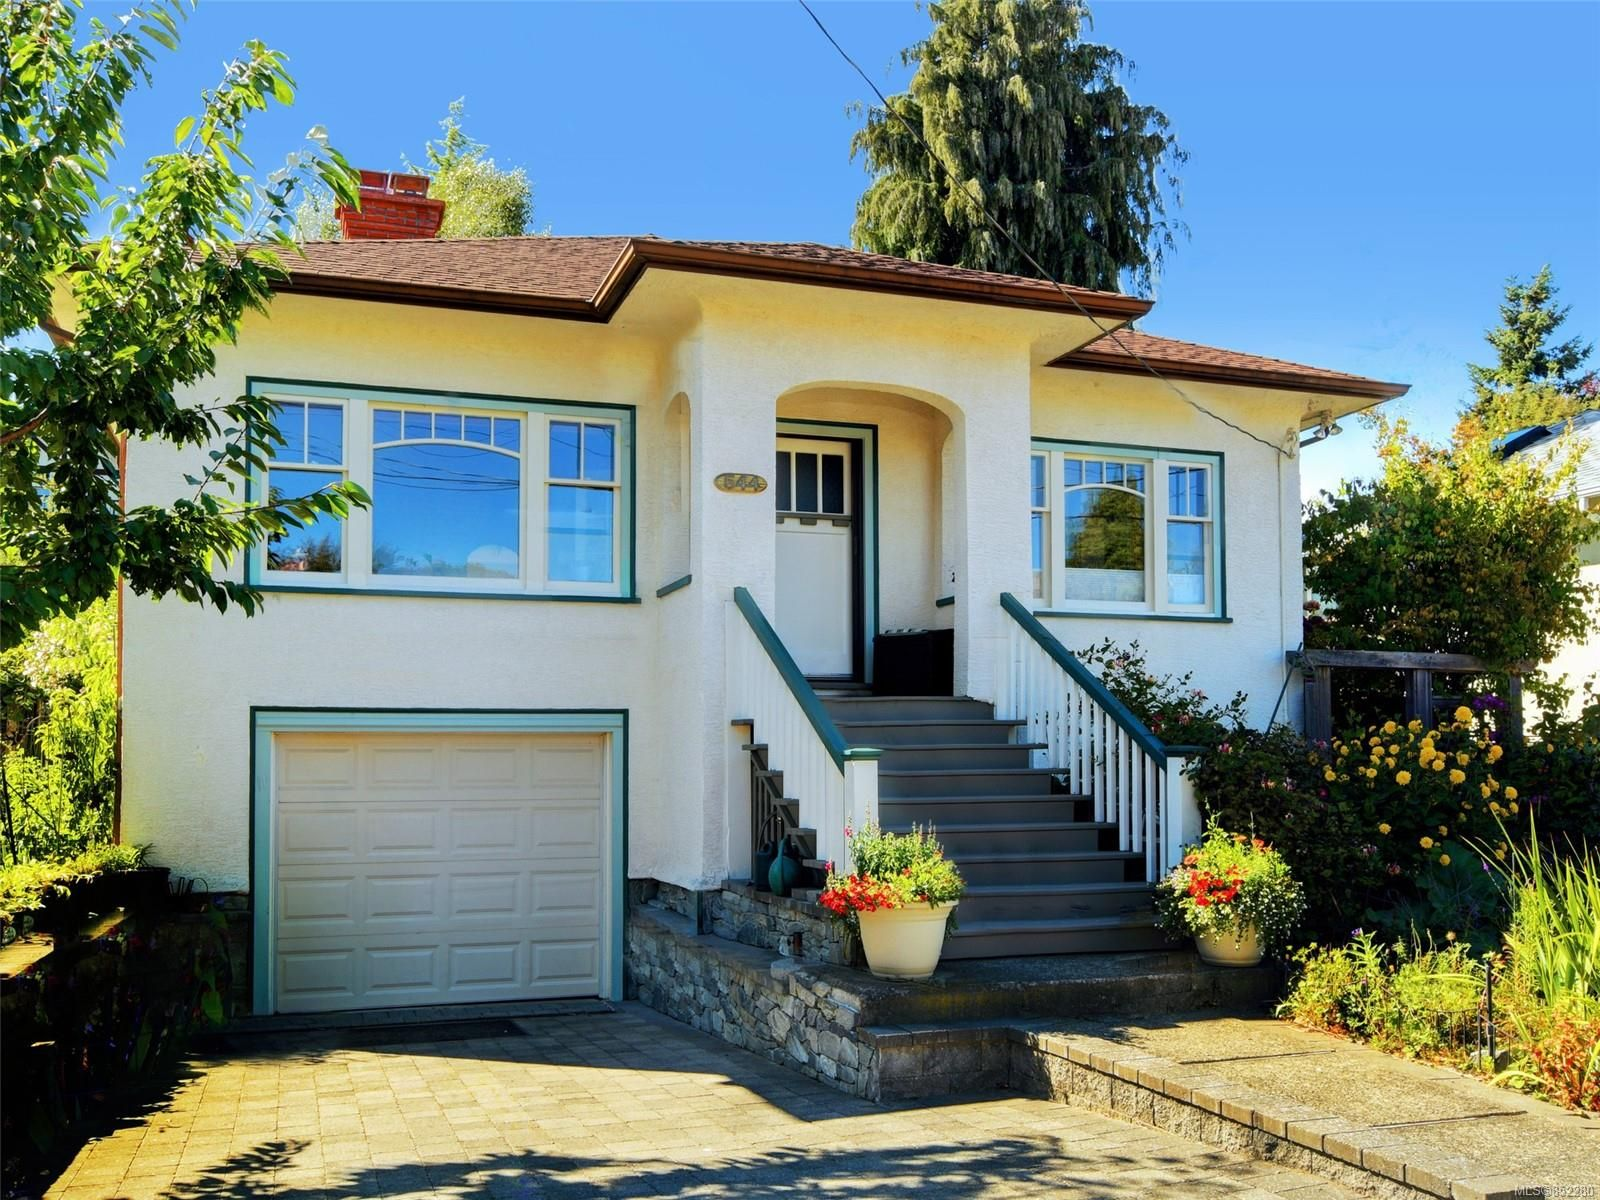 Main Photo: 544 Cornwall St in : Vi Fairfield West House for sale (Victoria)  : MLS®# 852280